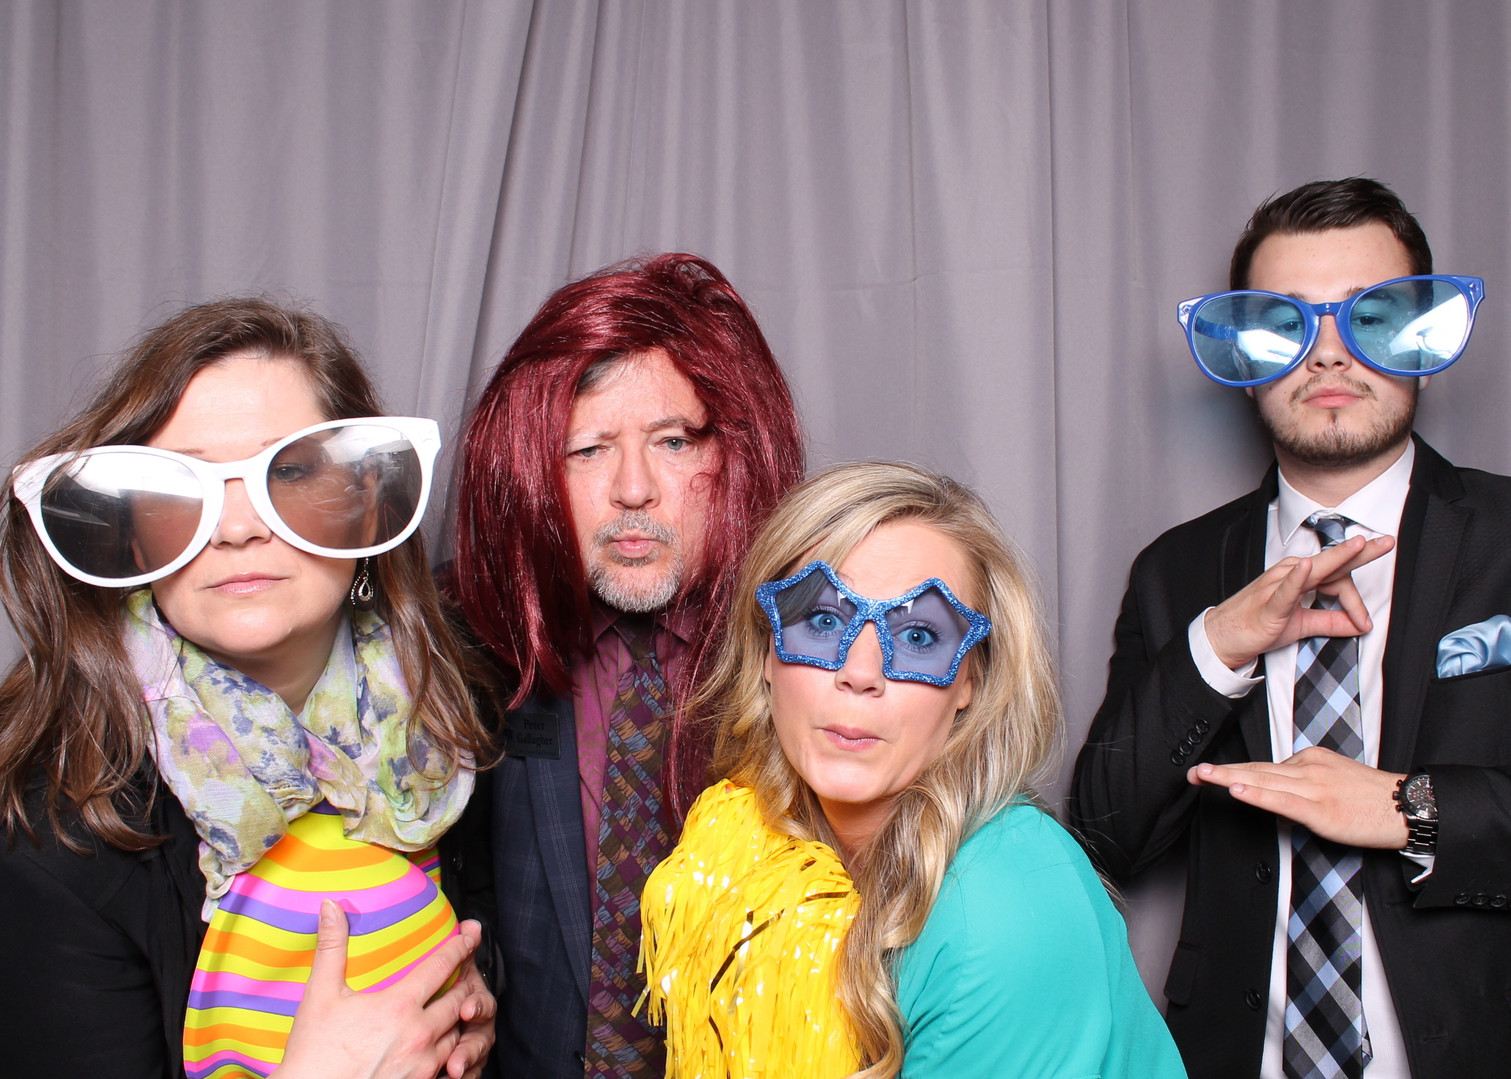 SASH Services Team Photo Booth